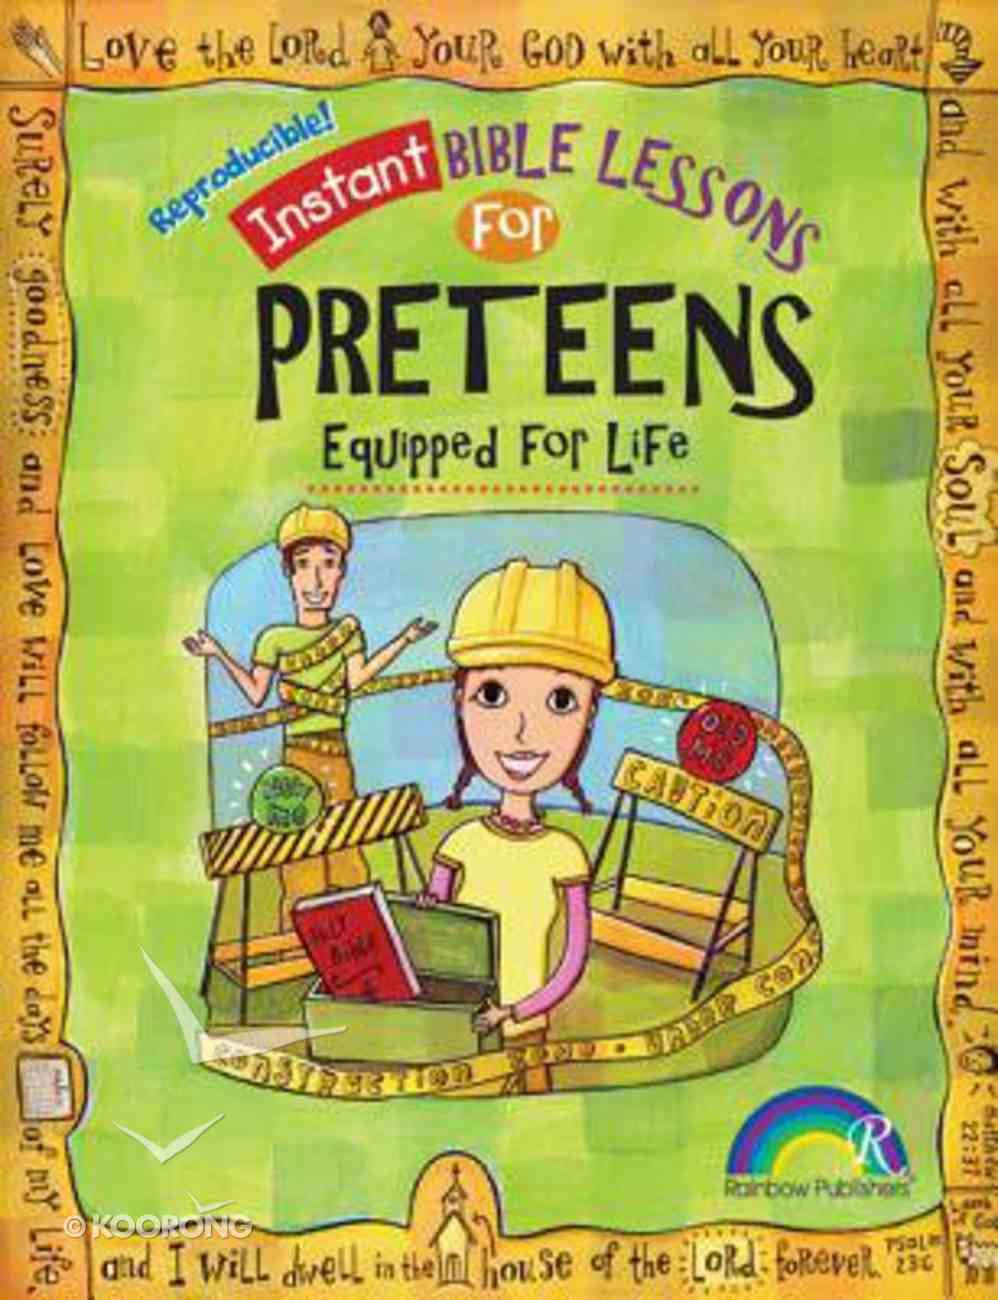 Equipped For Life (Ages 10-12) (Instant Bible Lessons Series) Paperback